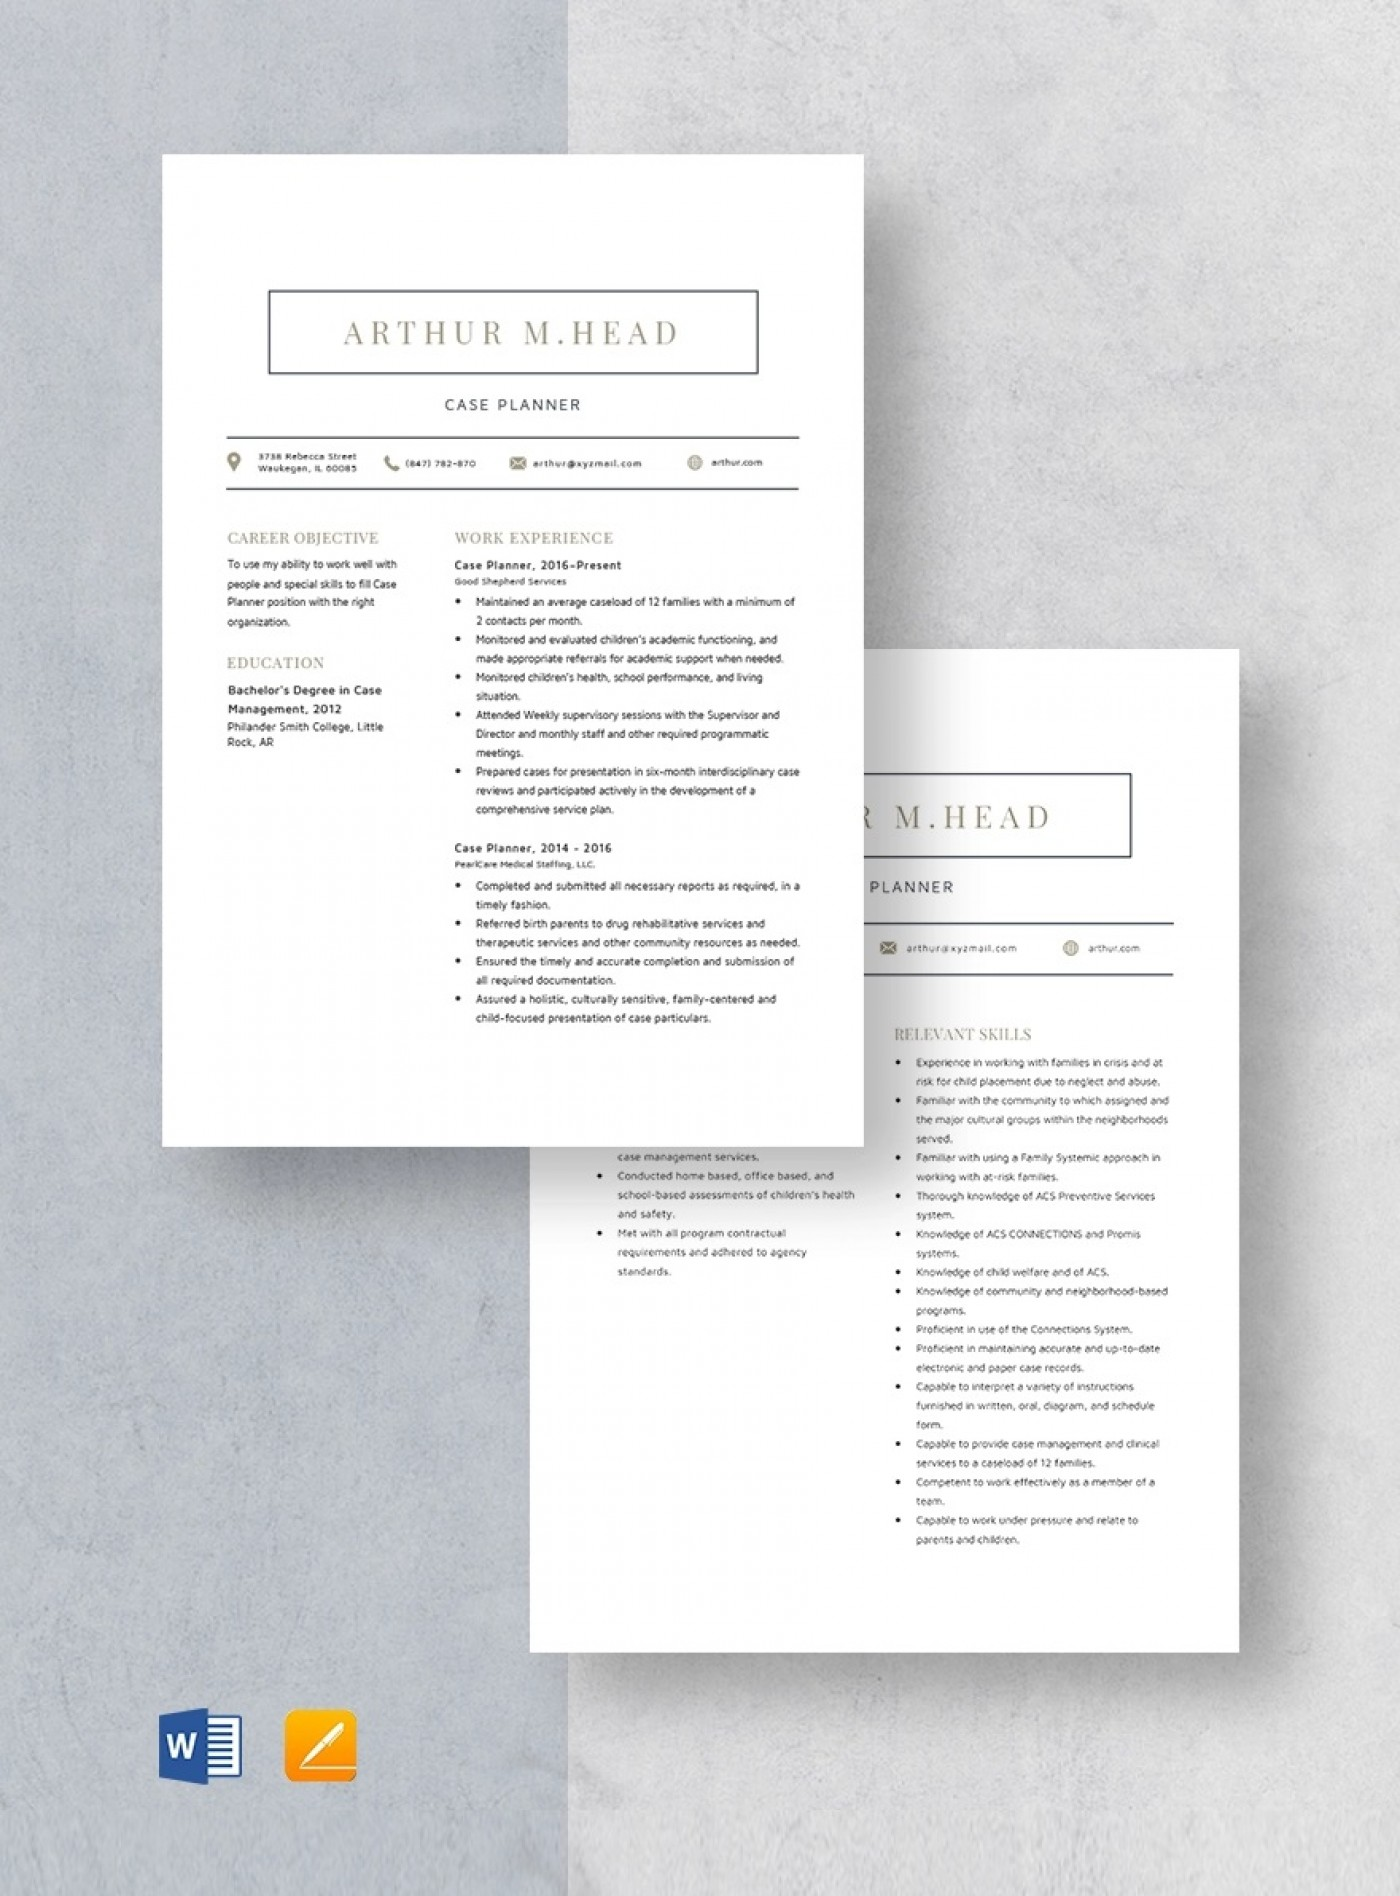 Template Case Planner Resume 1400